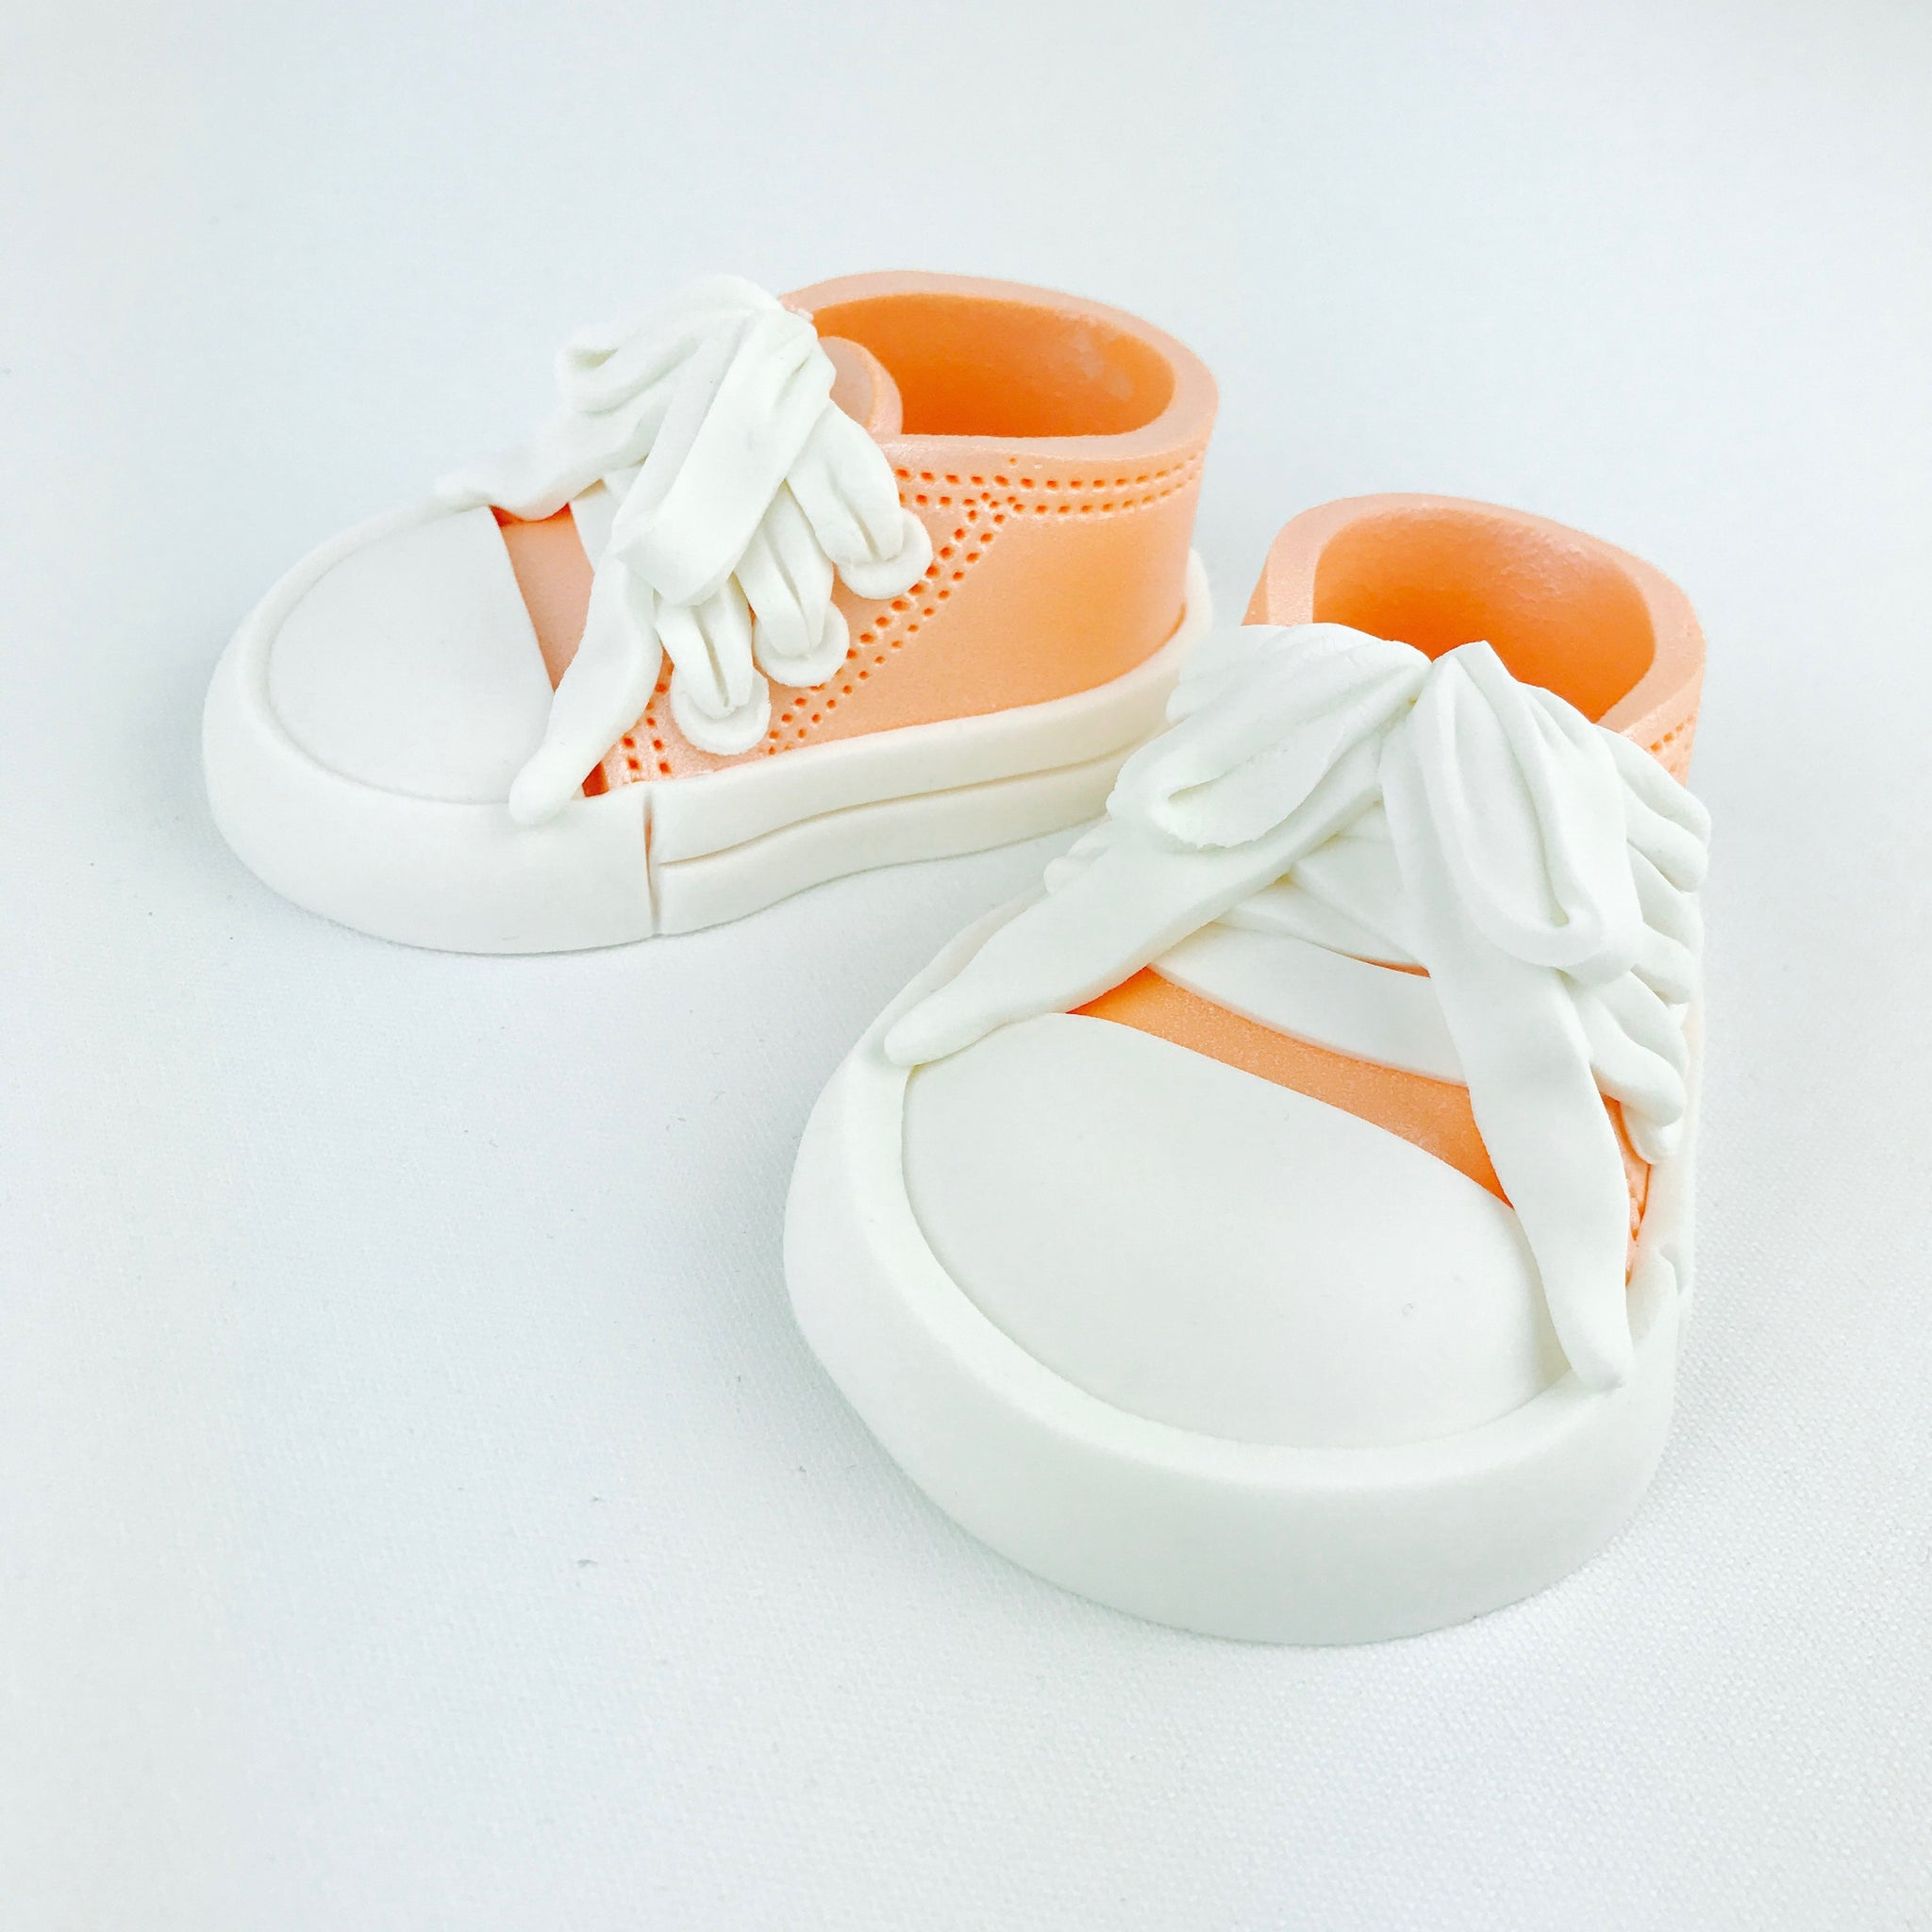 Baby Shoes Cake Topper in Orange